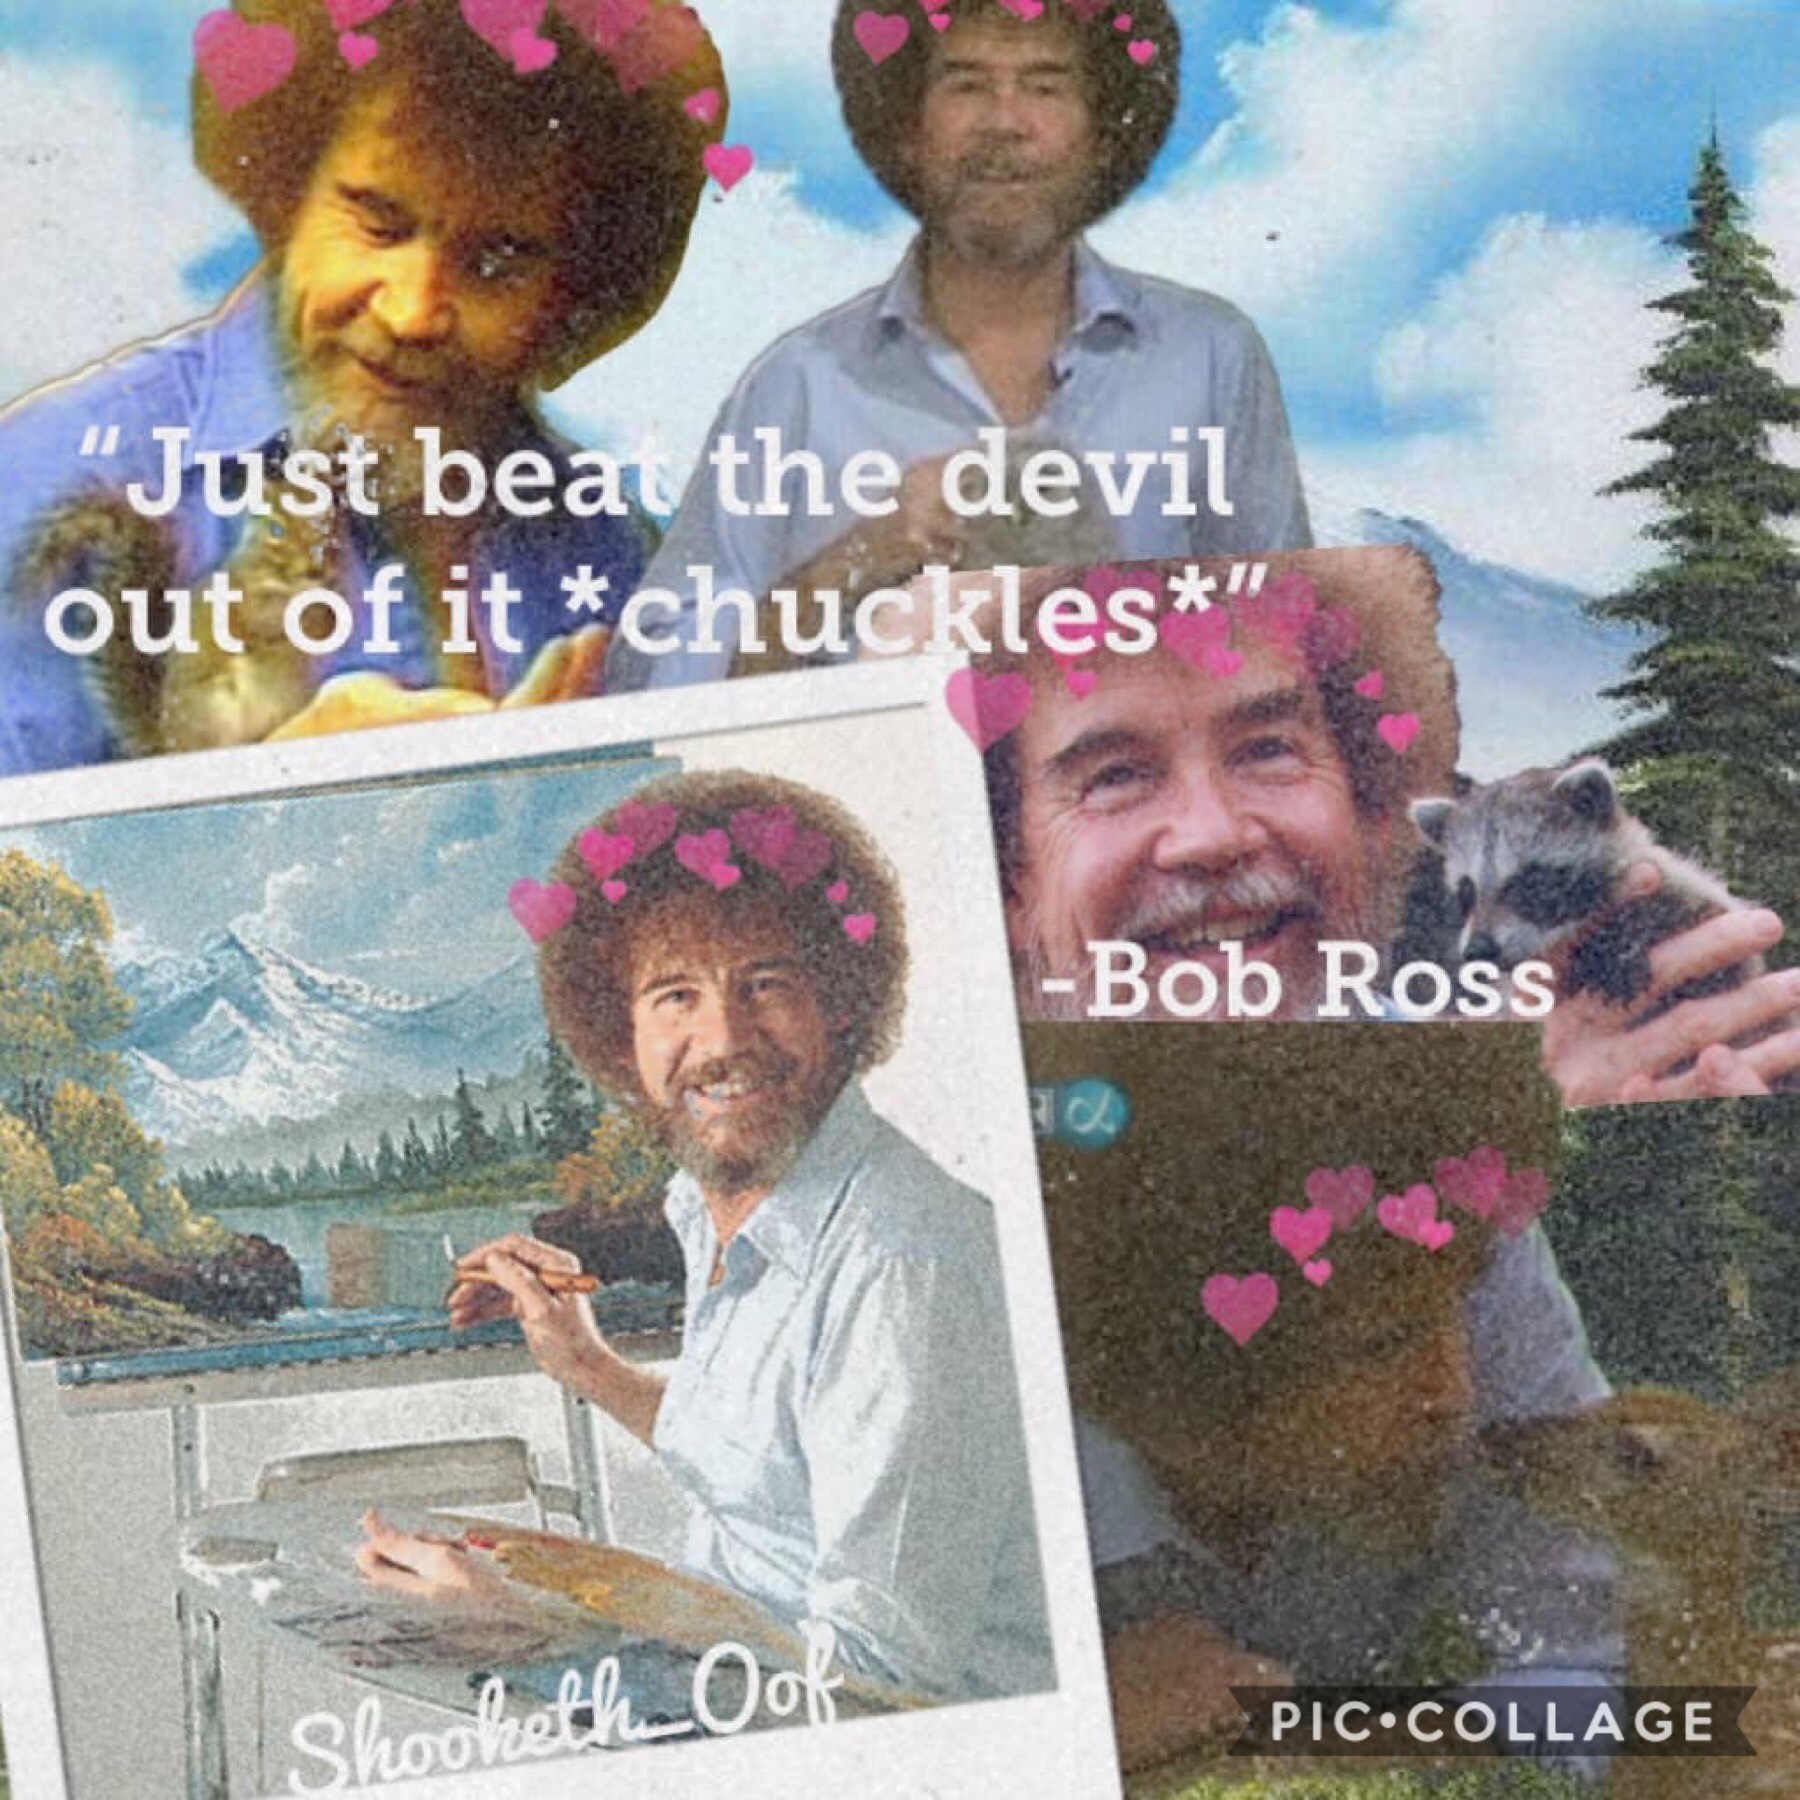 Made by Shooketh_Oof🌲 8/10/2018 Remix Bob Ross Collages and I'll post them with credit😊🌲☁️🙃